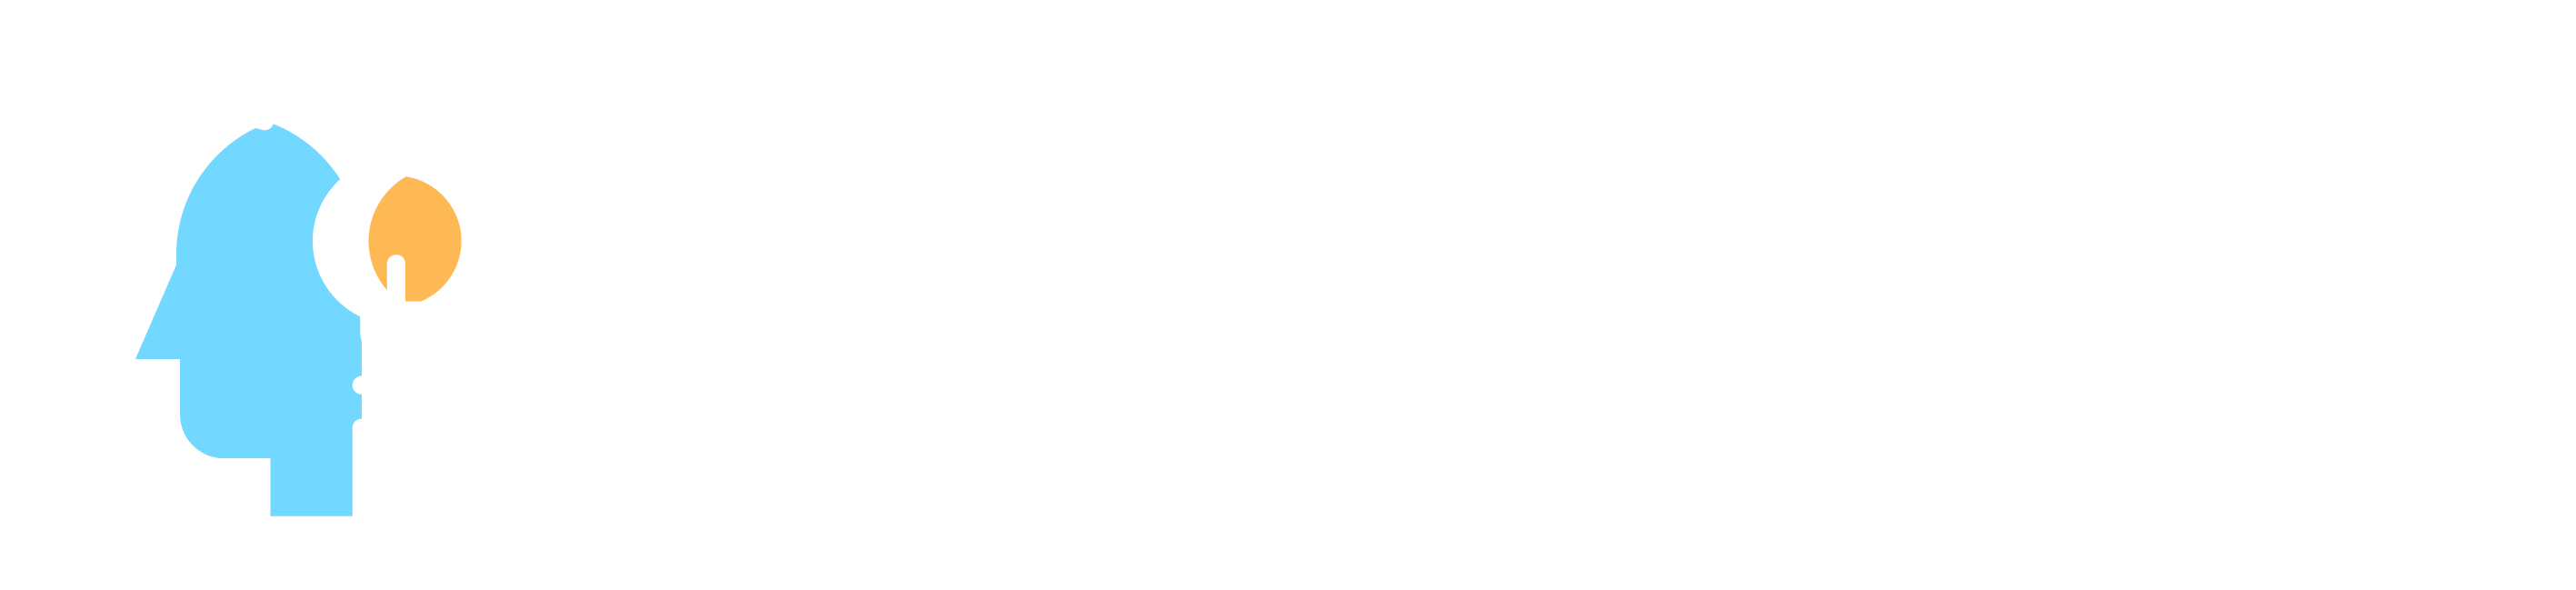 Prestation Intellectuelle - par Opase